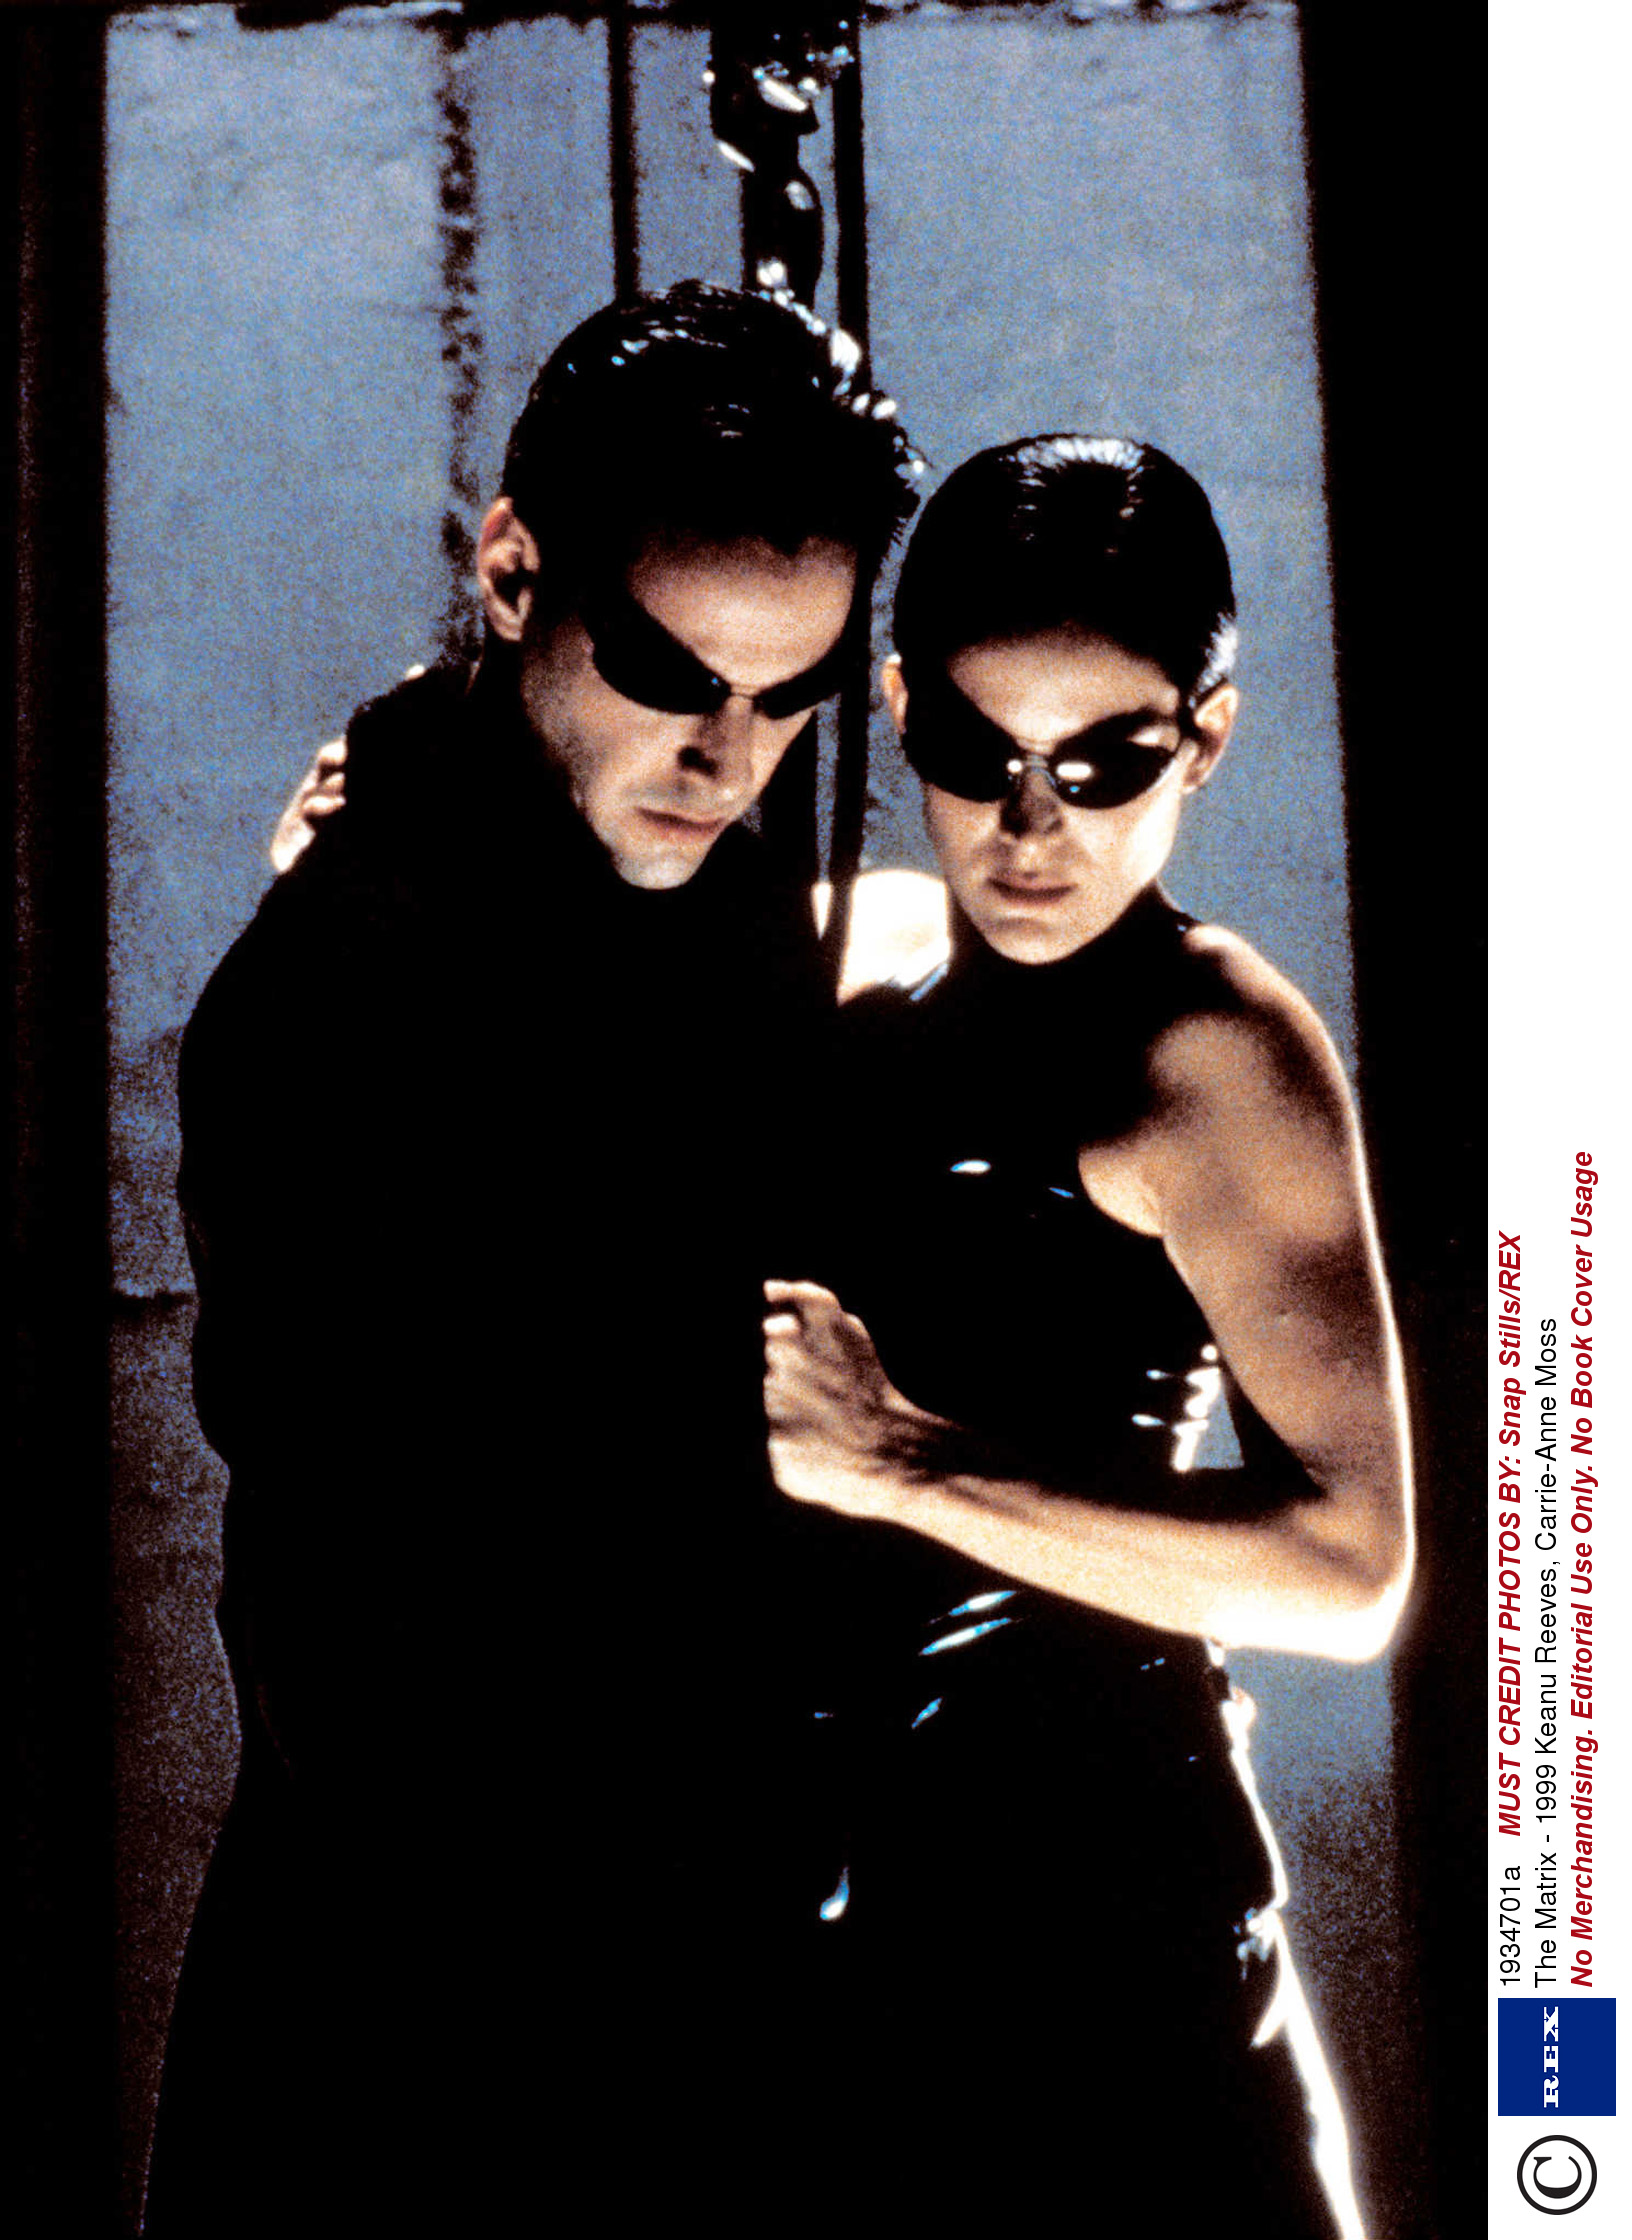 """a review of the popular movie the matrix Reviews top 10s the matrix revolutionizes nothing by eric melin on november 5, 2003 tweet  the newest """"matrix"""" movie is basically a re-do of the last one ."""